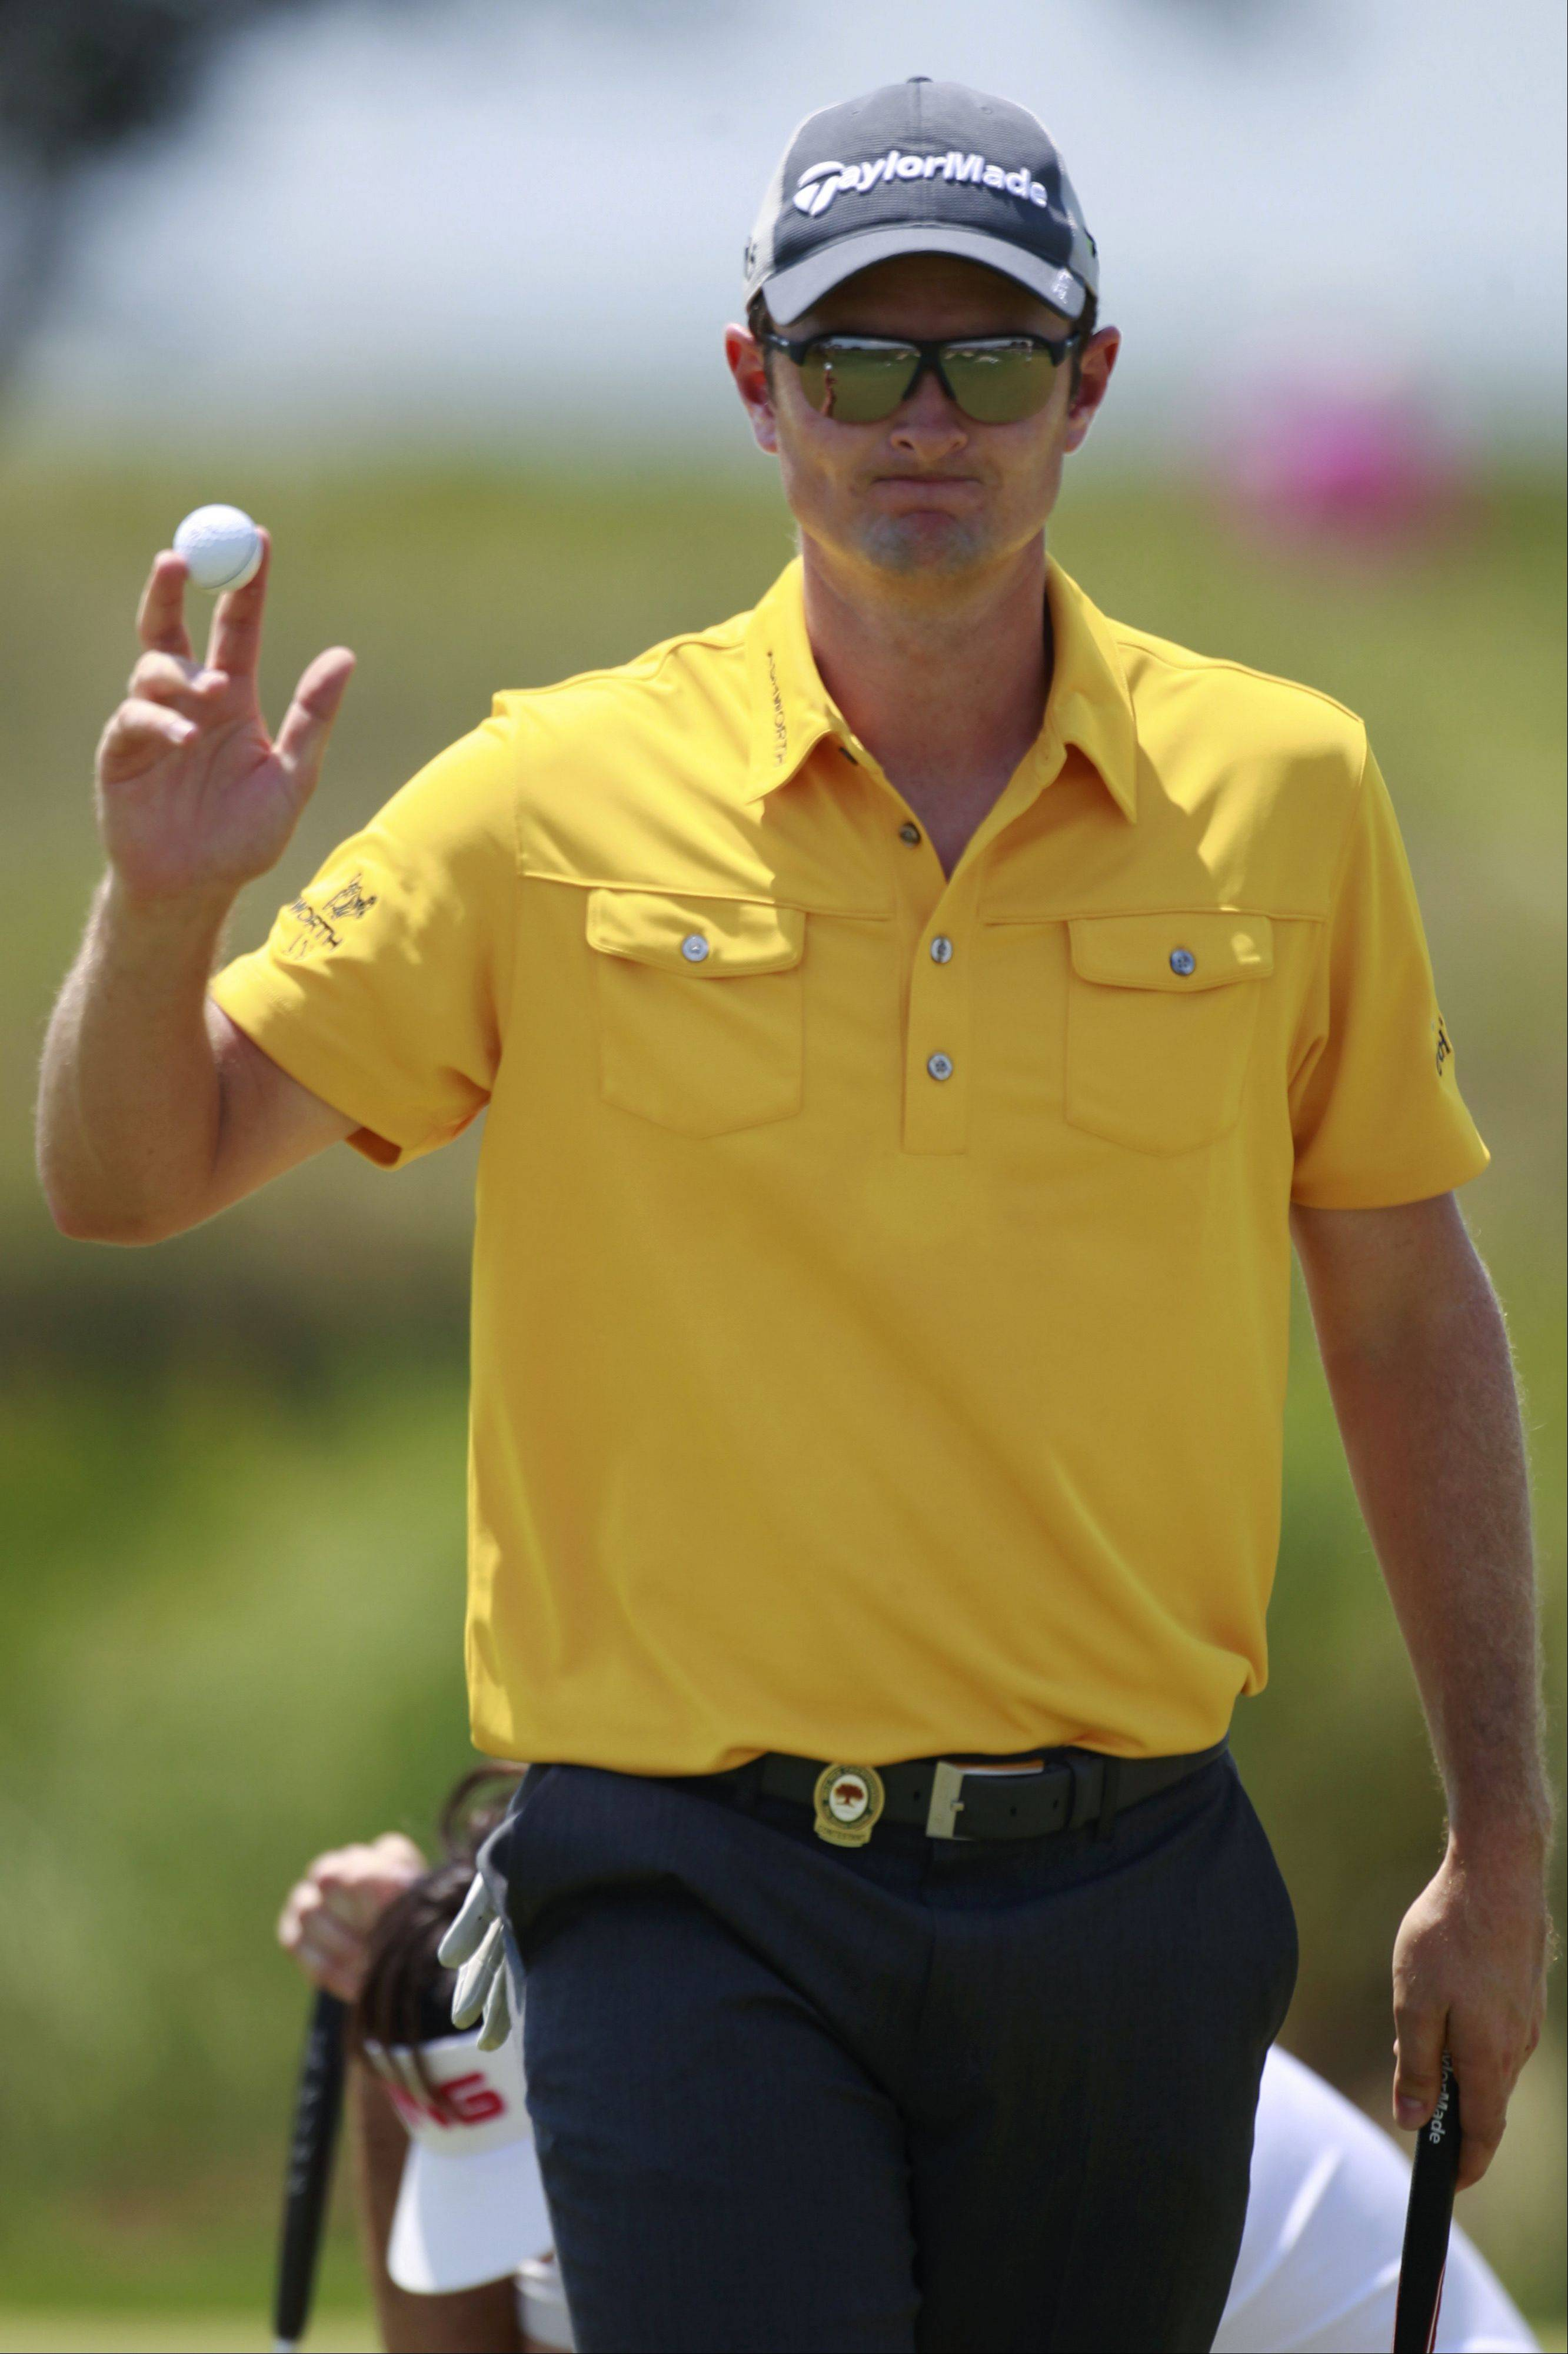 Justin Rose, of England, waves to the gallery after putting on the second green during the final round of the PGA Championship golf tournament on the Ocean Course of the Kiawah Island Golf Resort in Kiawah Island, S.C., Sunday, Aug. 12, 2012.